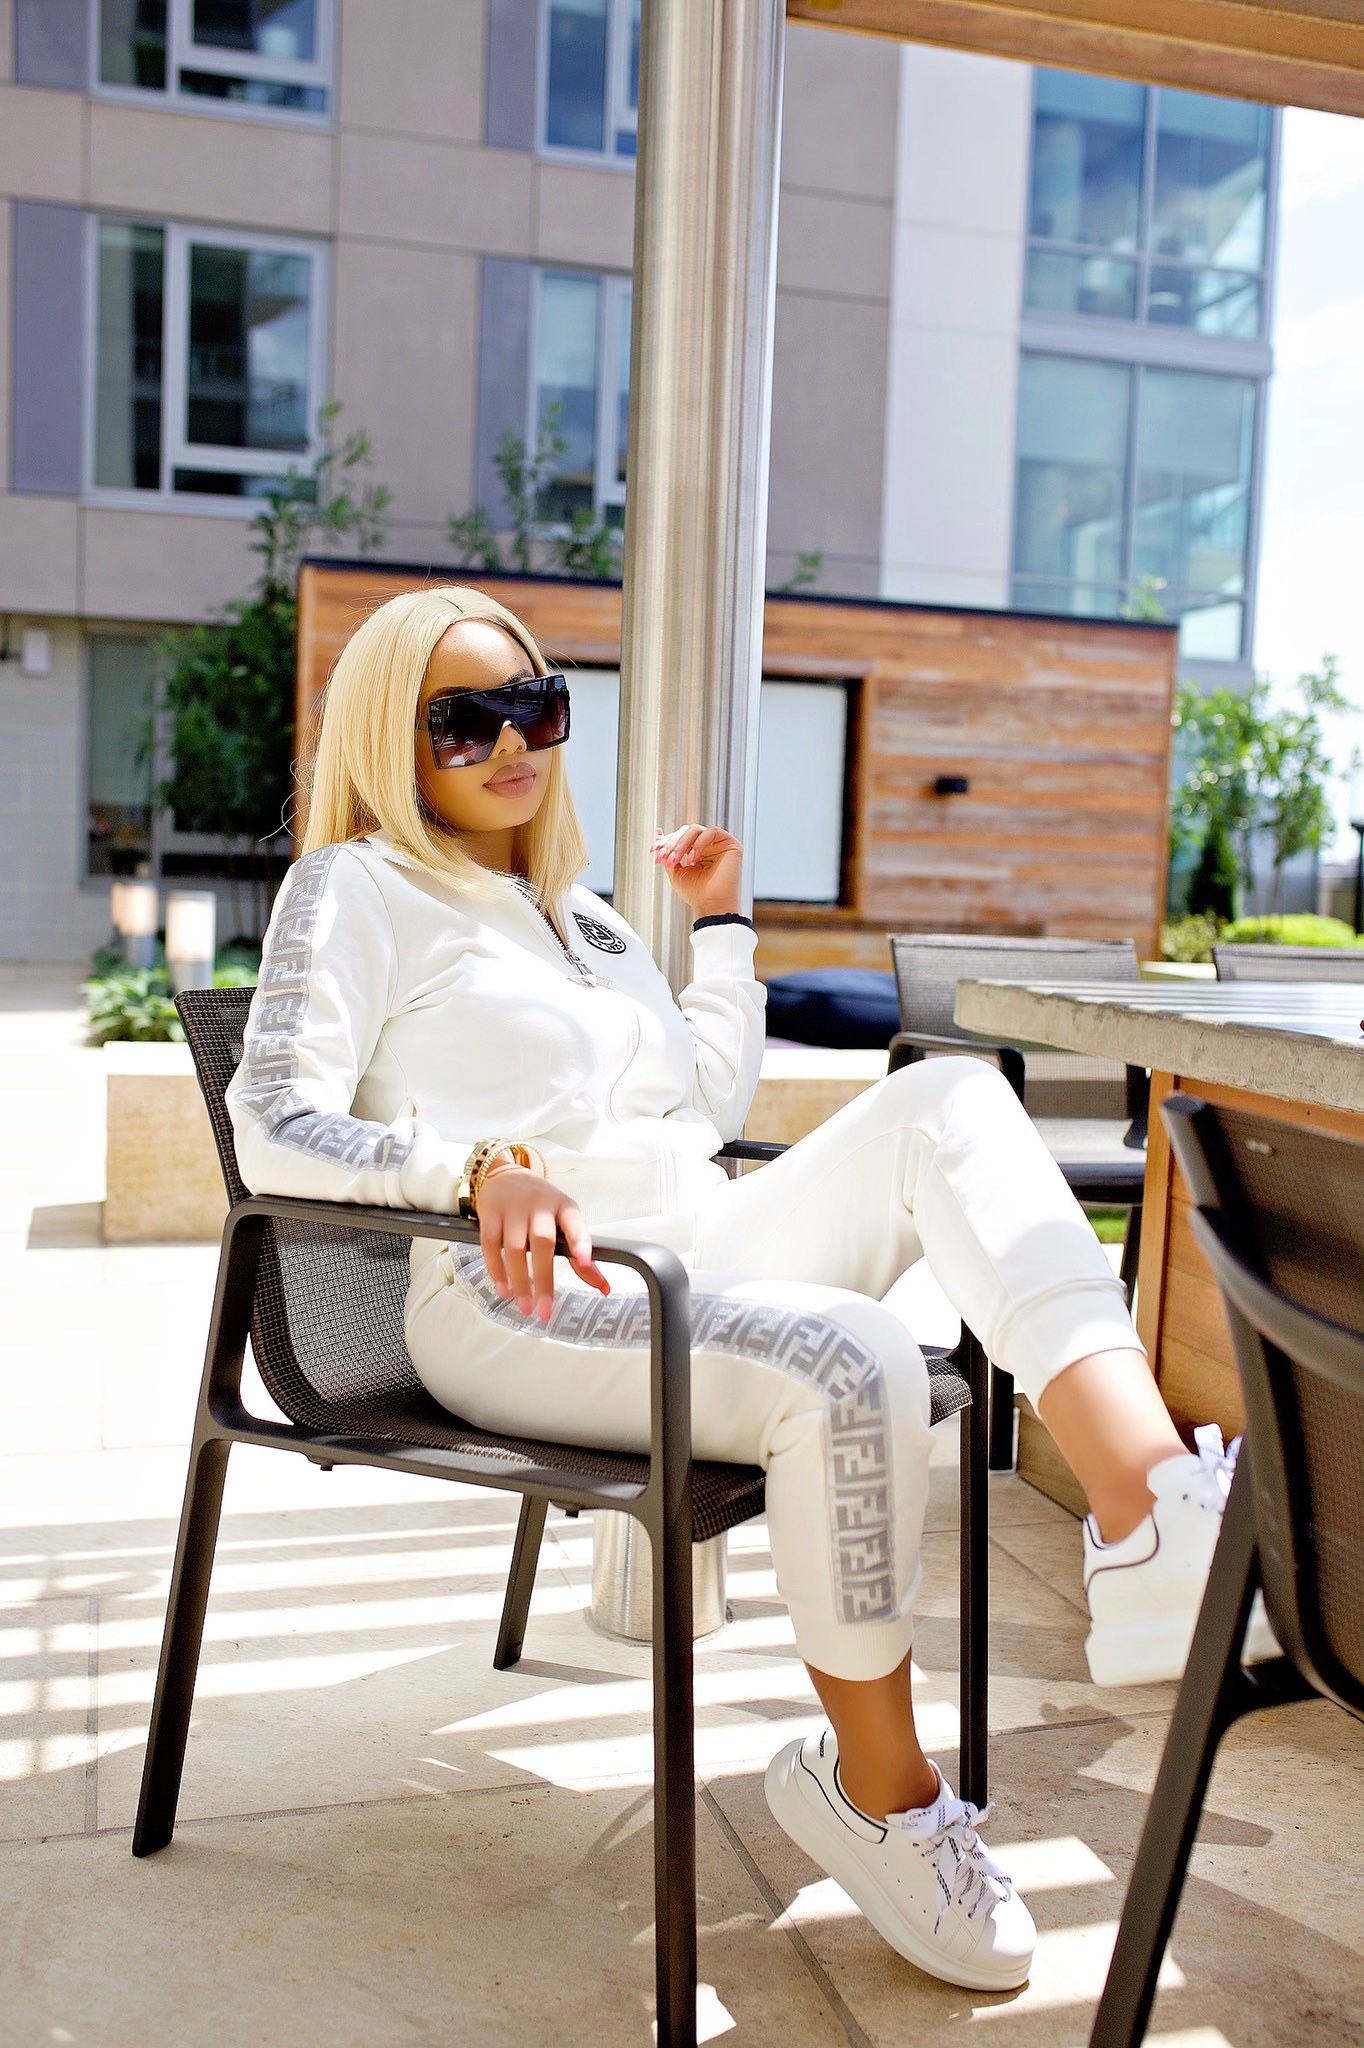 I am lucky - Nina Ivy flaunts her cute baby and stunning postpartum glow